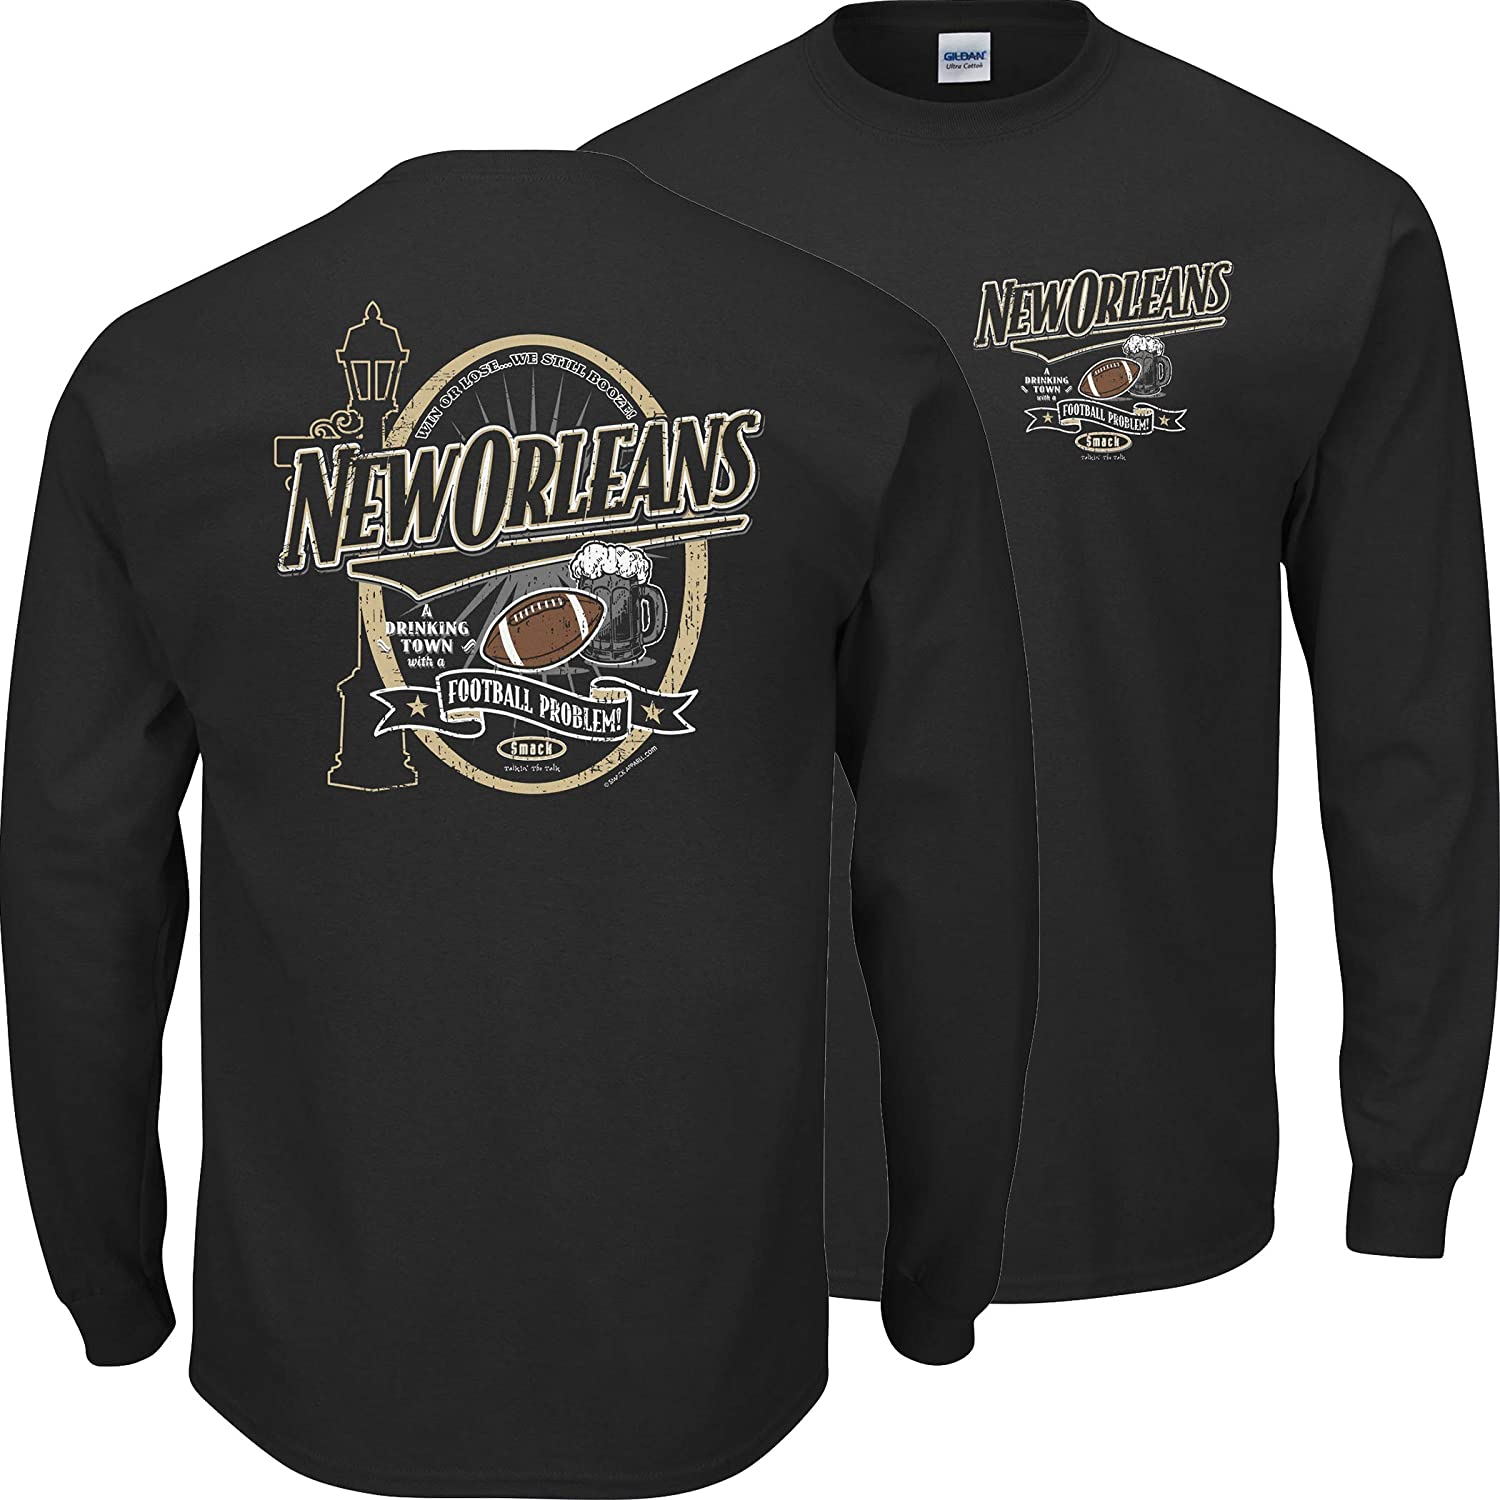 Sm-5X New Orleans Football Fans A Drinking Town with a Football Problem Black T-Shirt